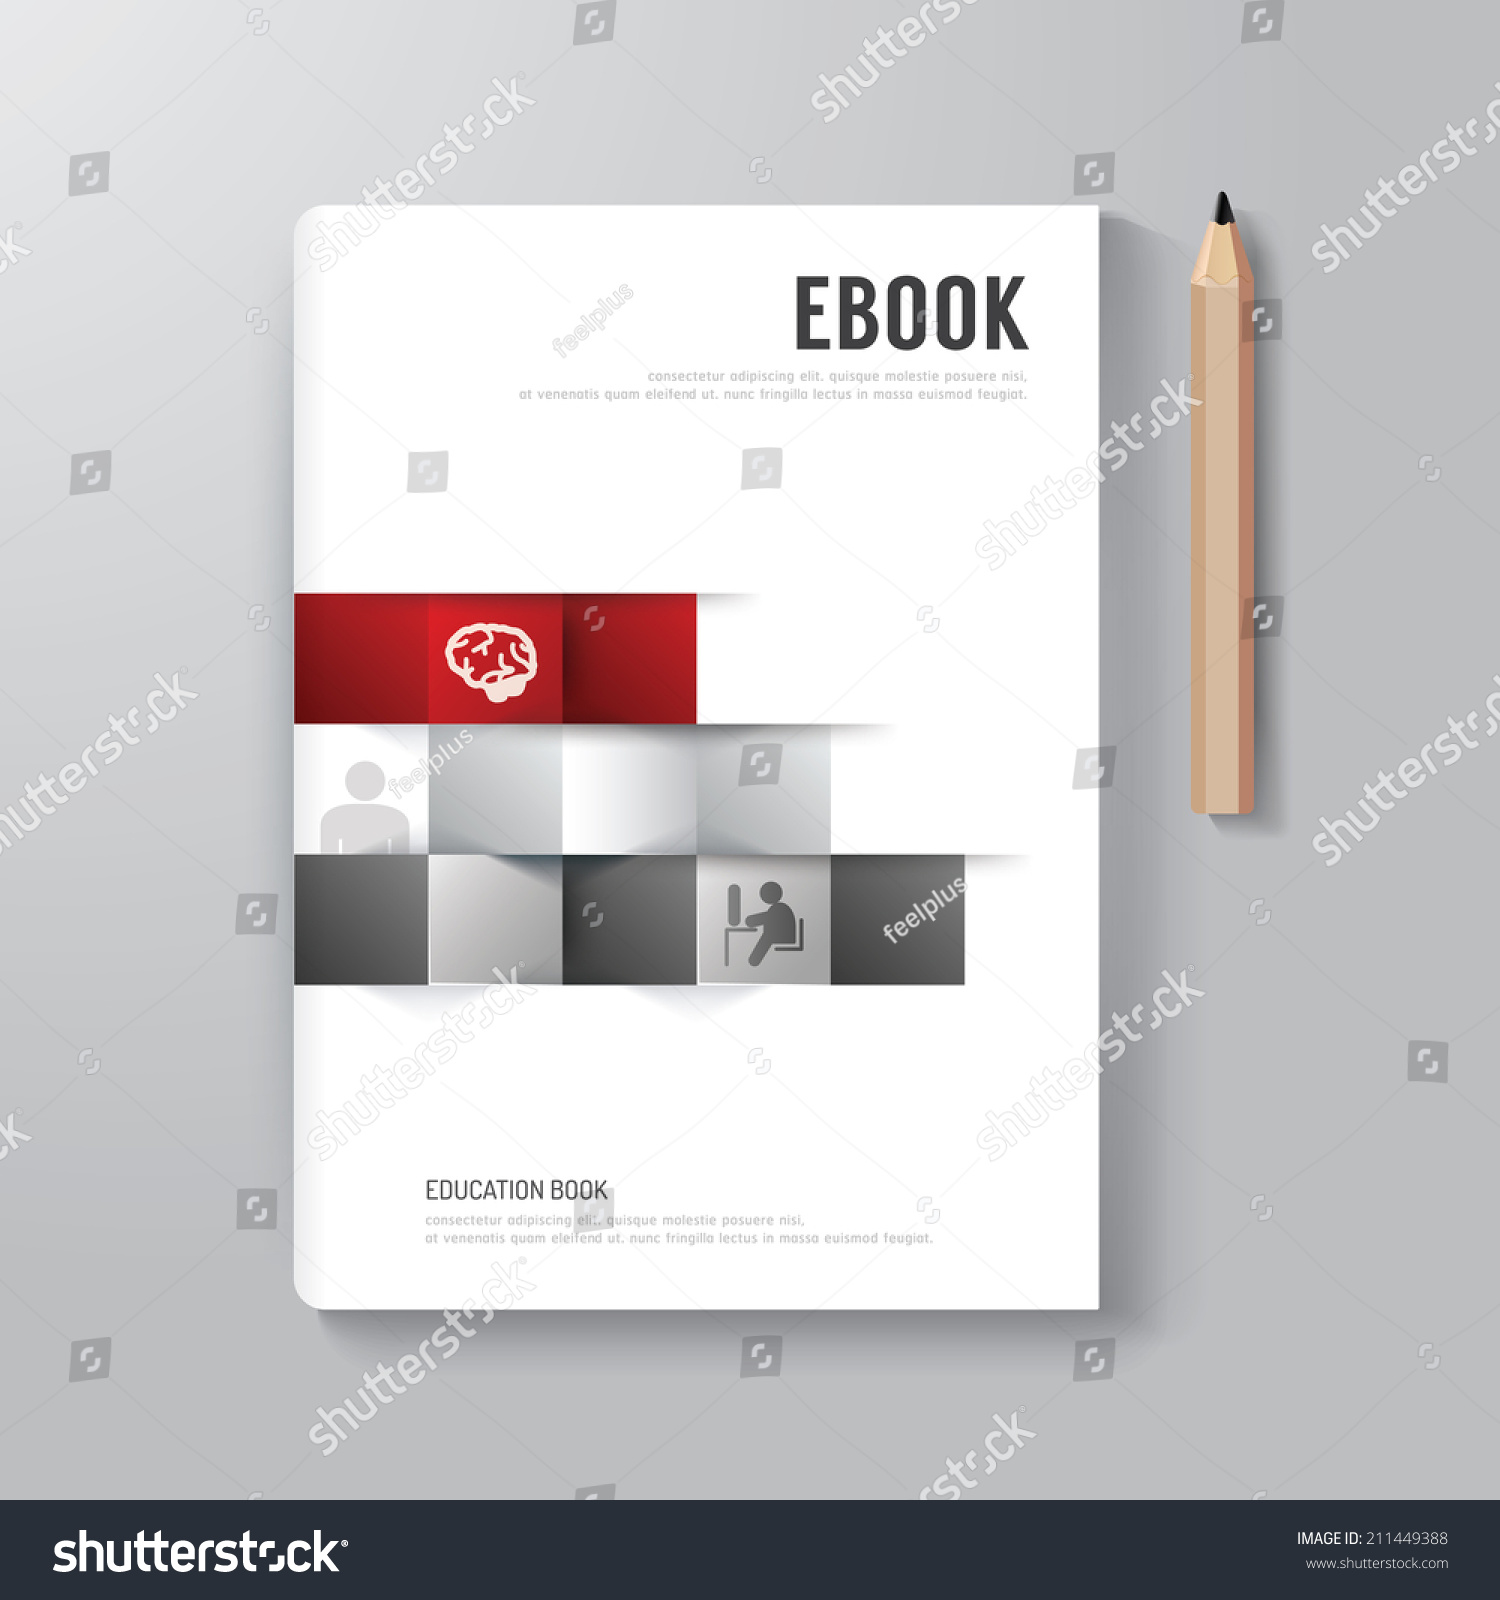 Book Cover Layout Design : Cover book digital design minimal style stock vector